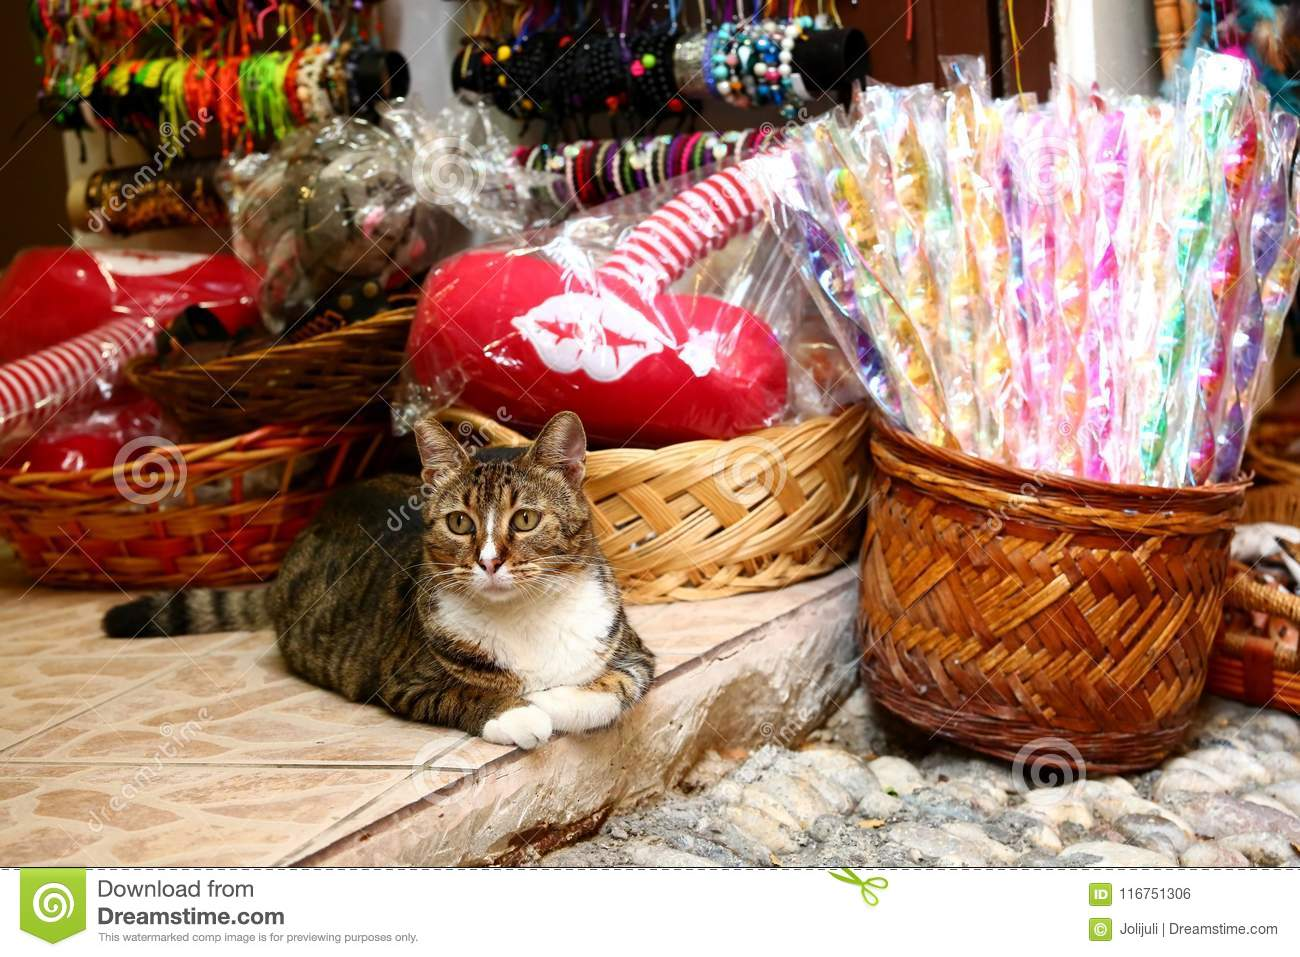 Cats and shops